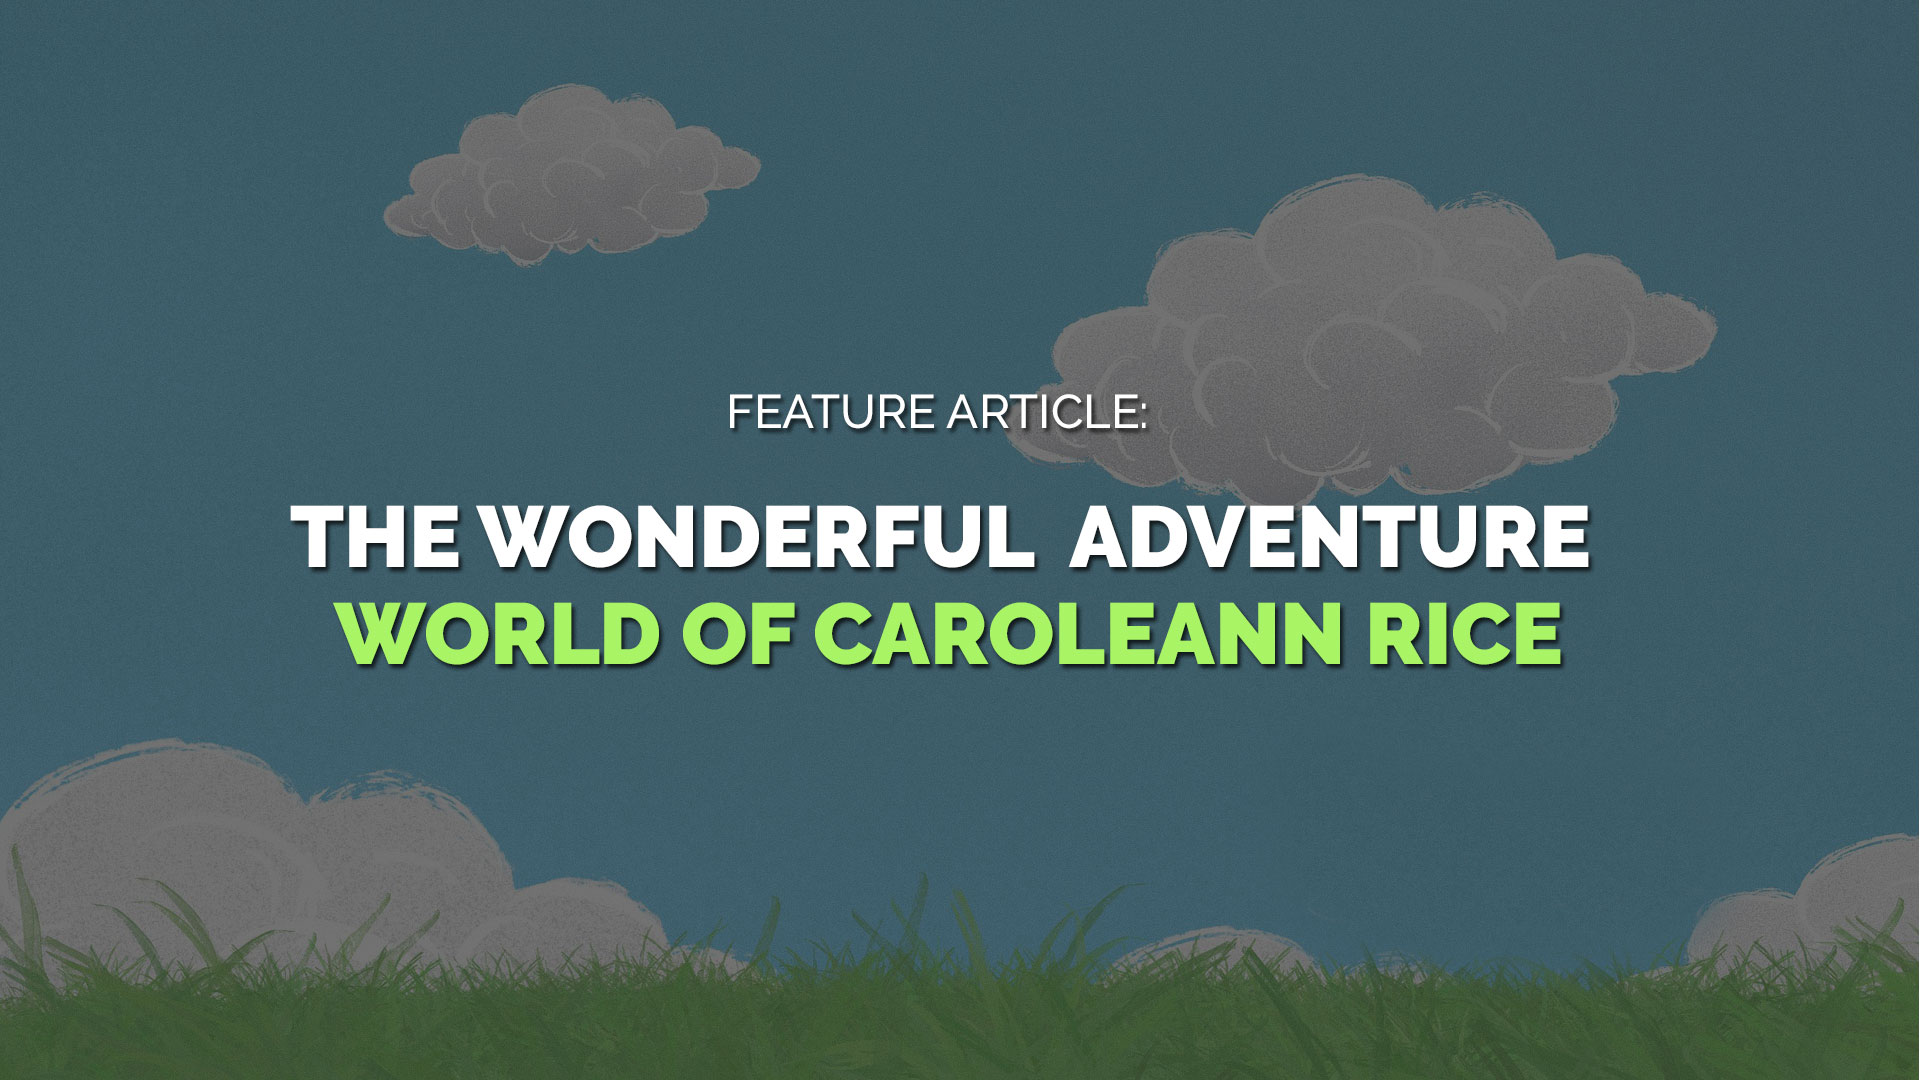 Feature-Article-The-Wonderful-Adventure-World-of-Caroleann-Rice banner